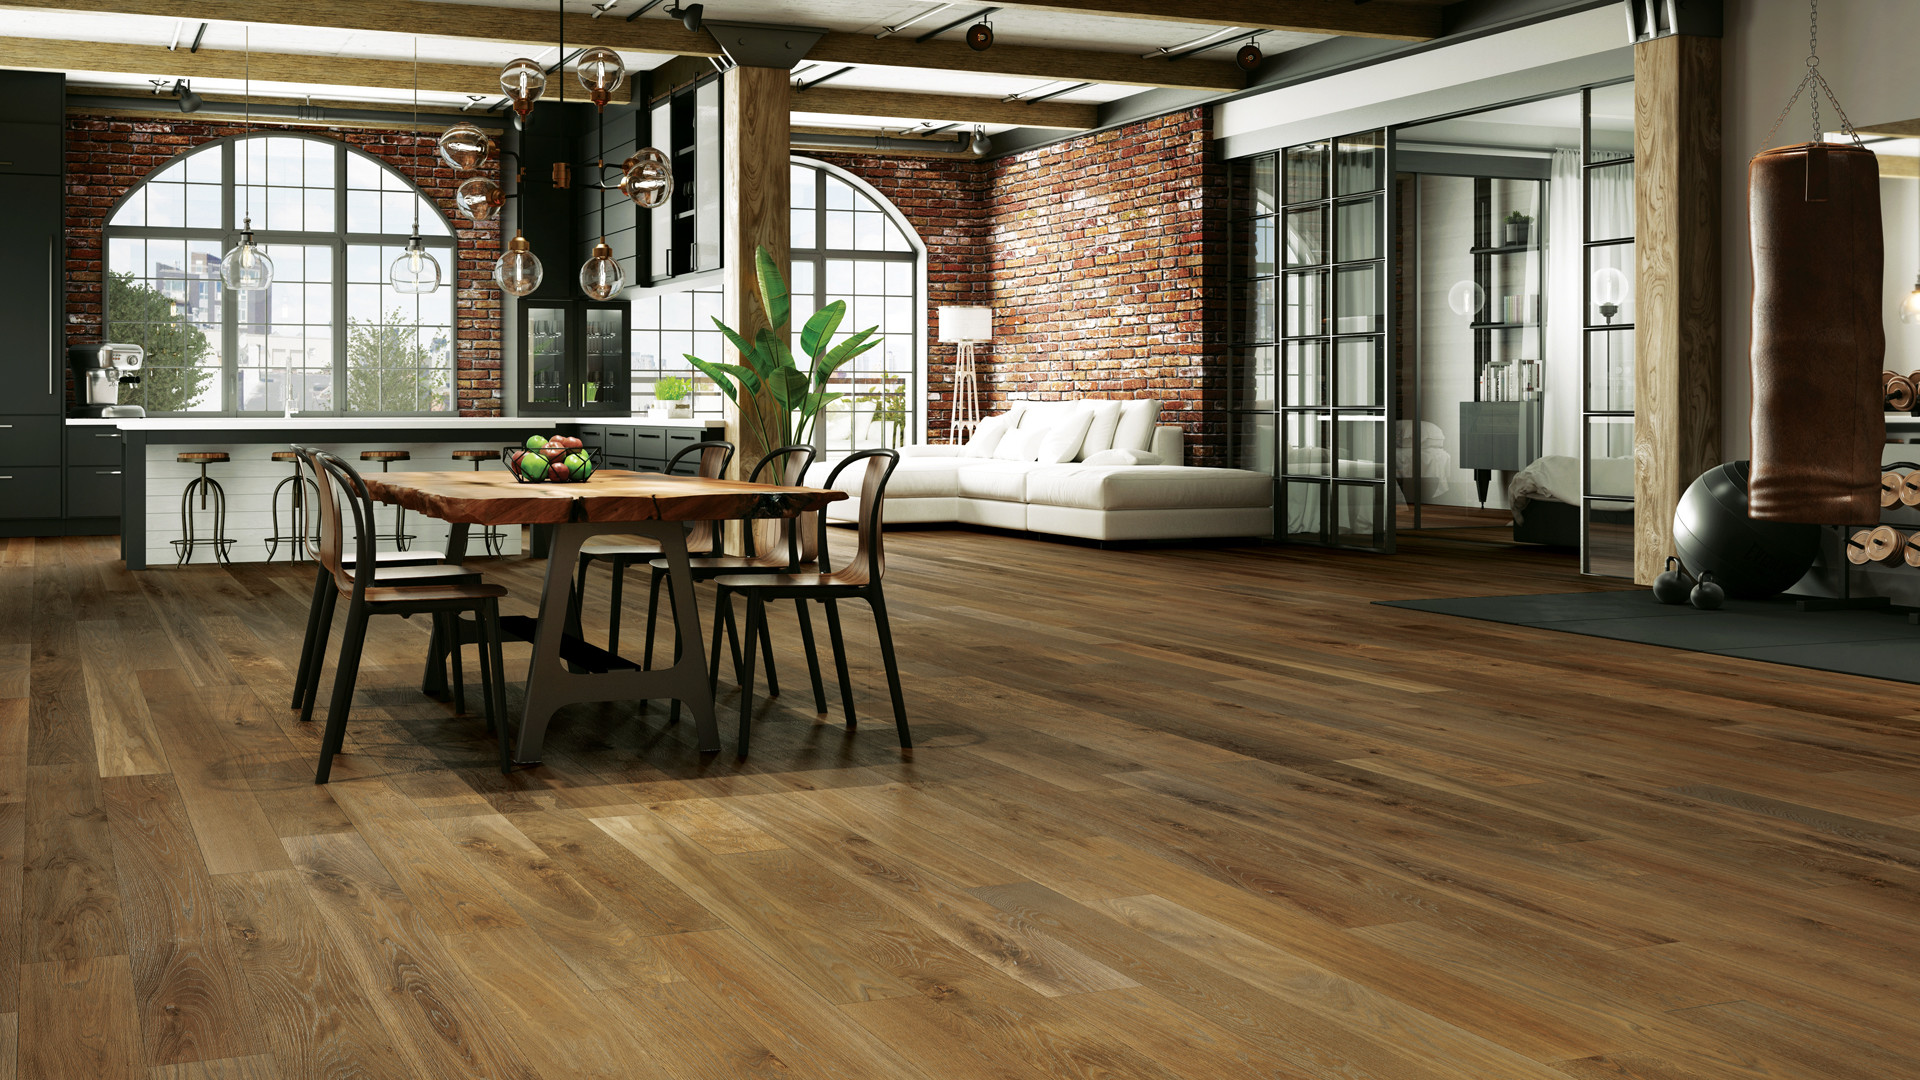 engineered hardwood flooring manufacturers canada of 4 latest hardwood flooring trends of 2018 lauzon flooring with regard to combined with a wire brushed texture and an ultra matte sheen these new 7a½ wide white oak hardwood floors will definitely add character to your home